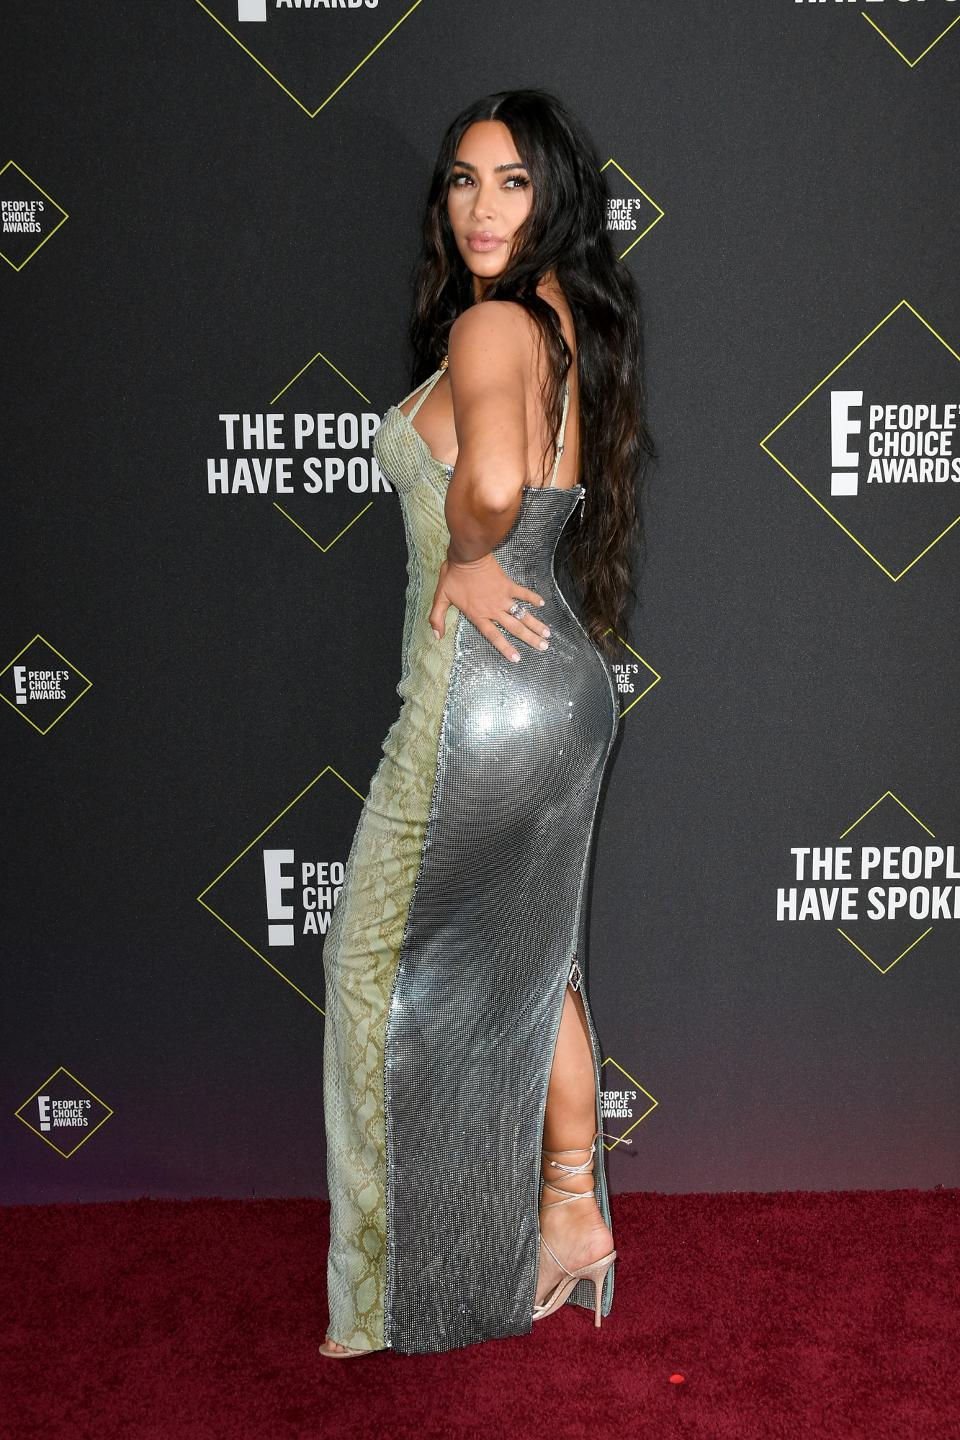 You Can Wear Kim Kardashian's Butt For $450